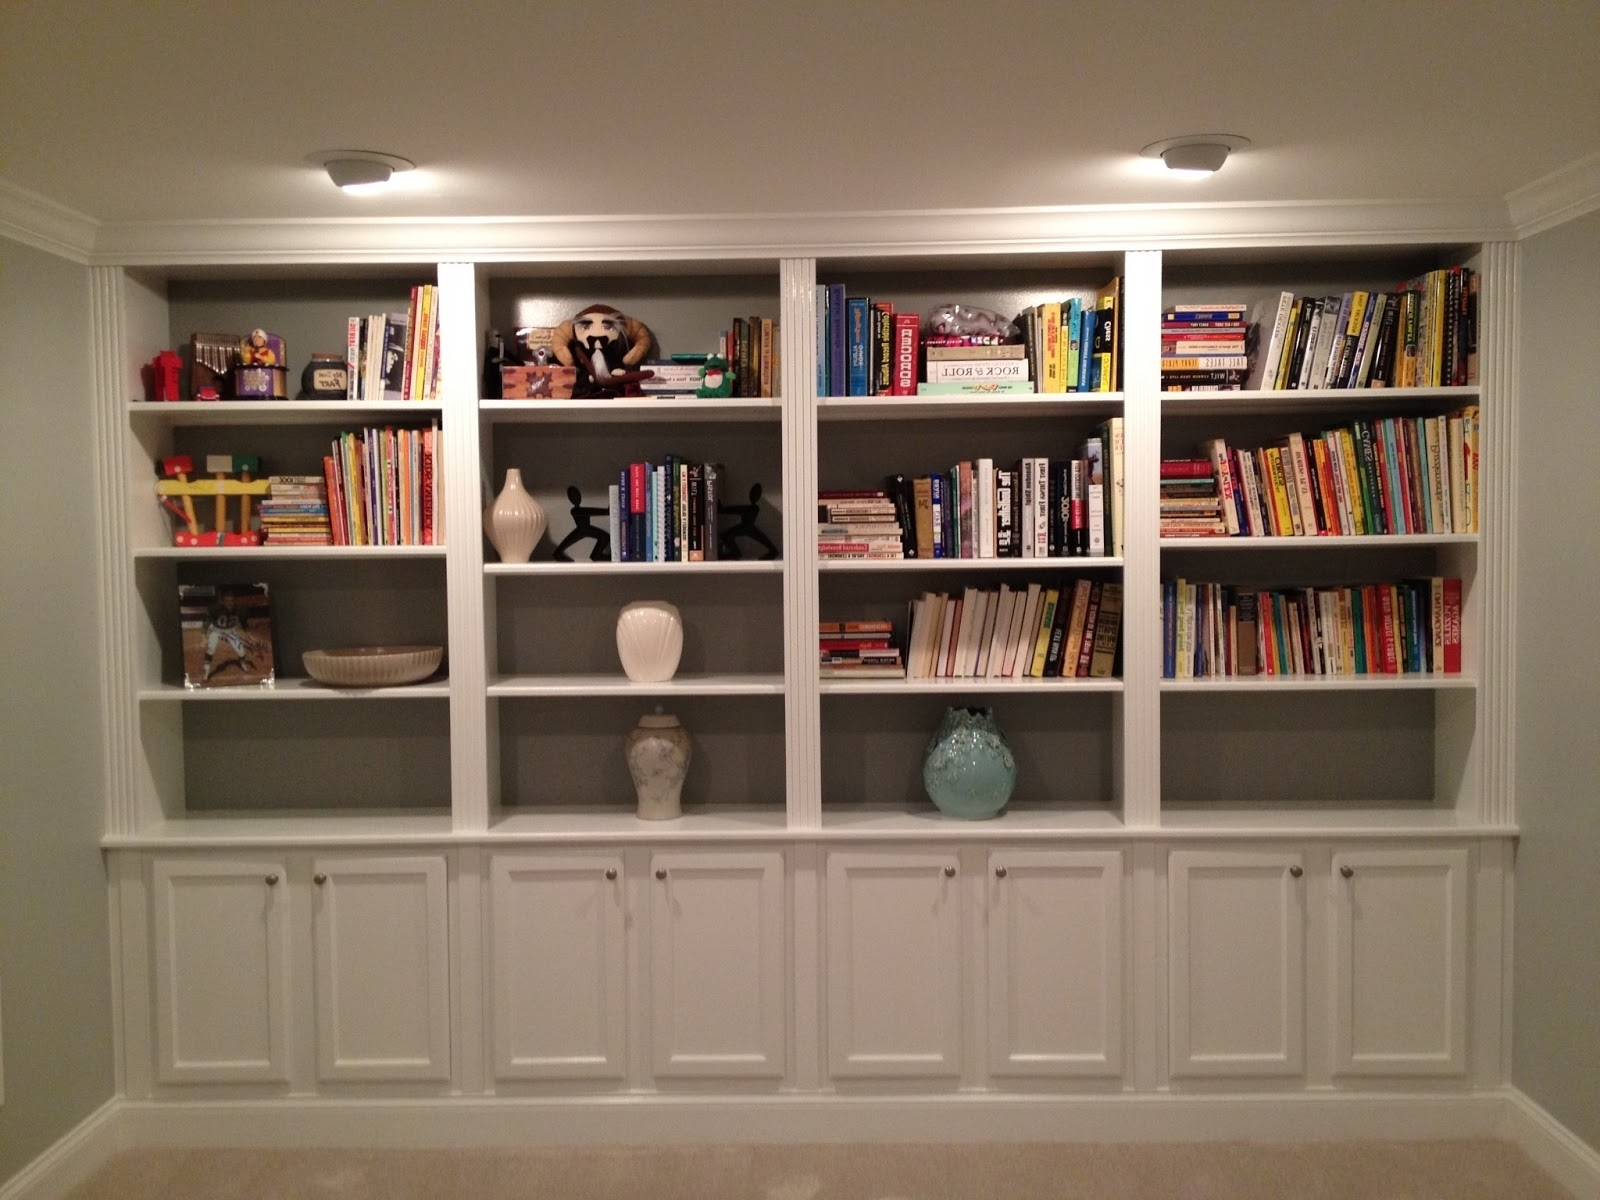 Bookcases Ideas: 10 Of The Most Creative Bookshelves Designs Pertaining To Latest Unique Bookcases Designs (View 2 of 15)